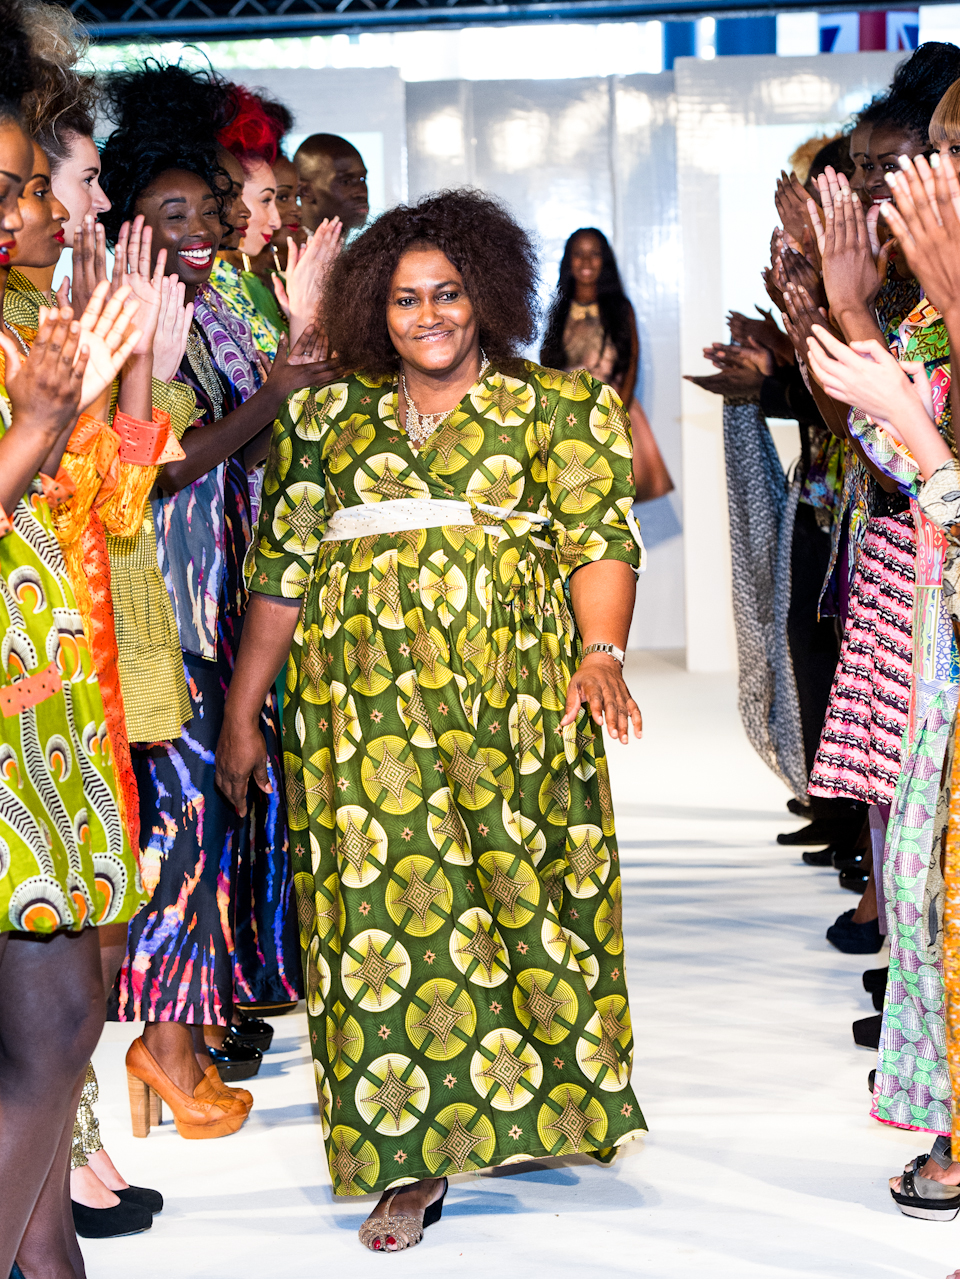 afwl2012-house-of-jola-103-simon-klyne.jpg